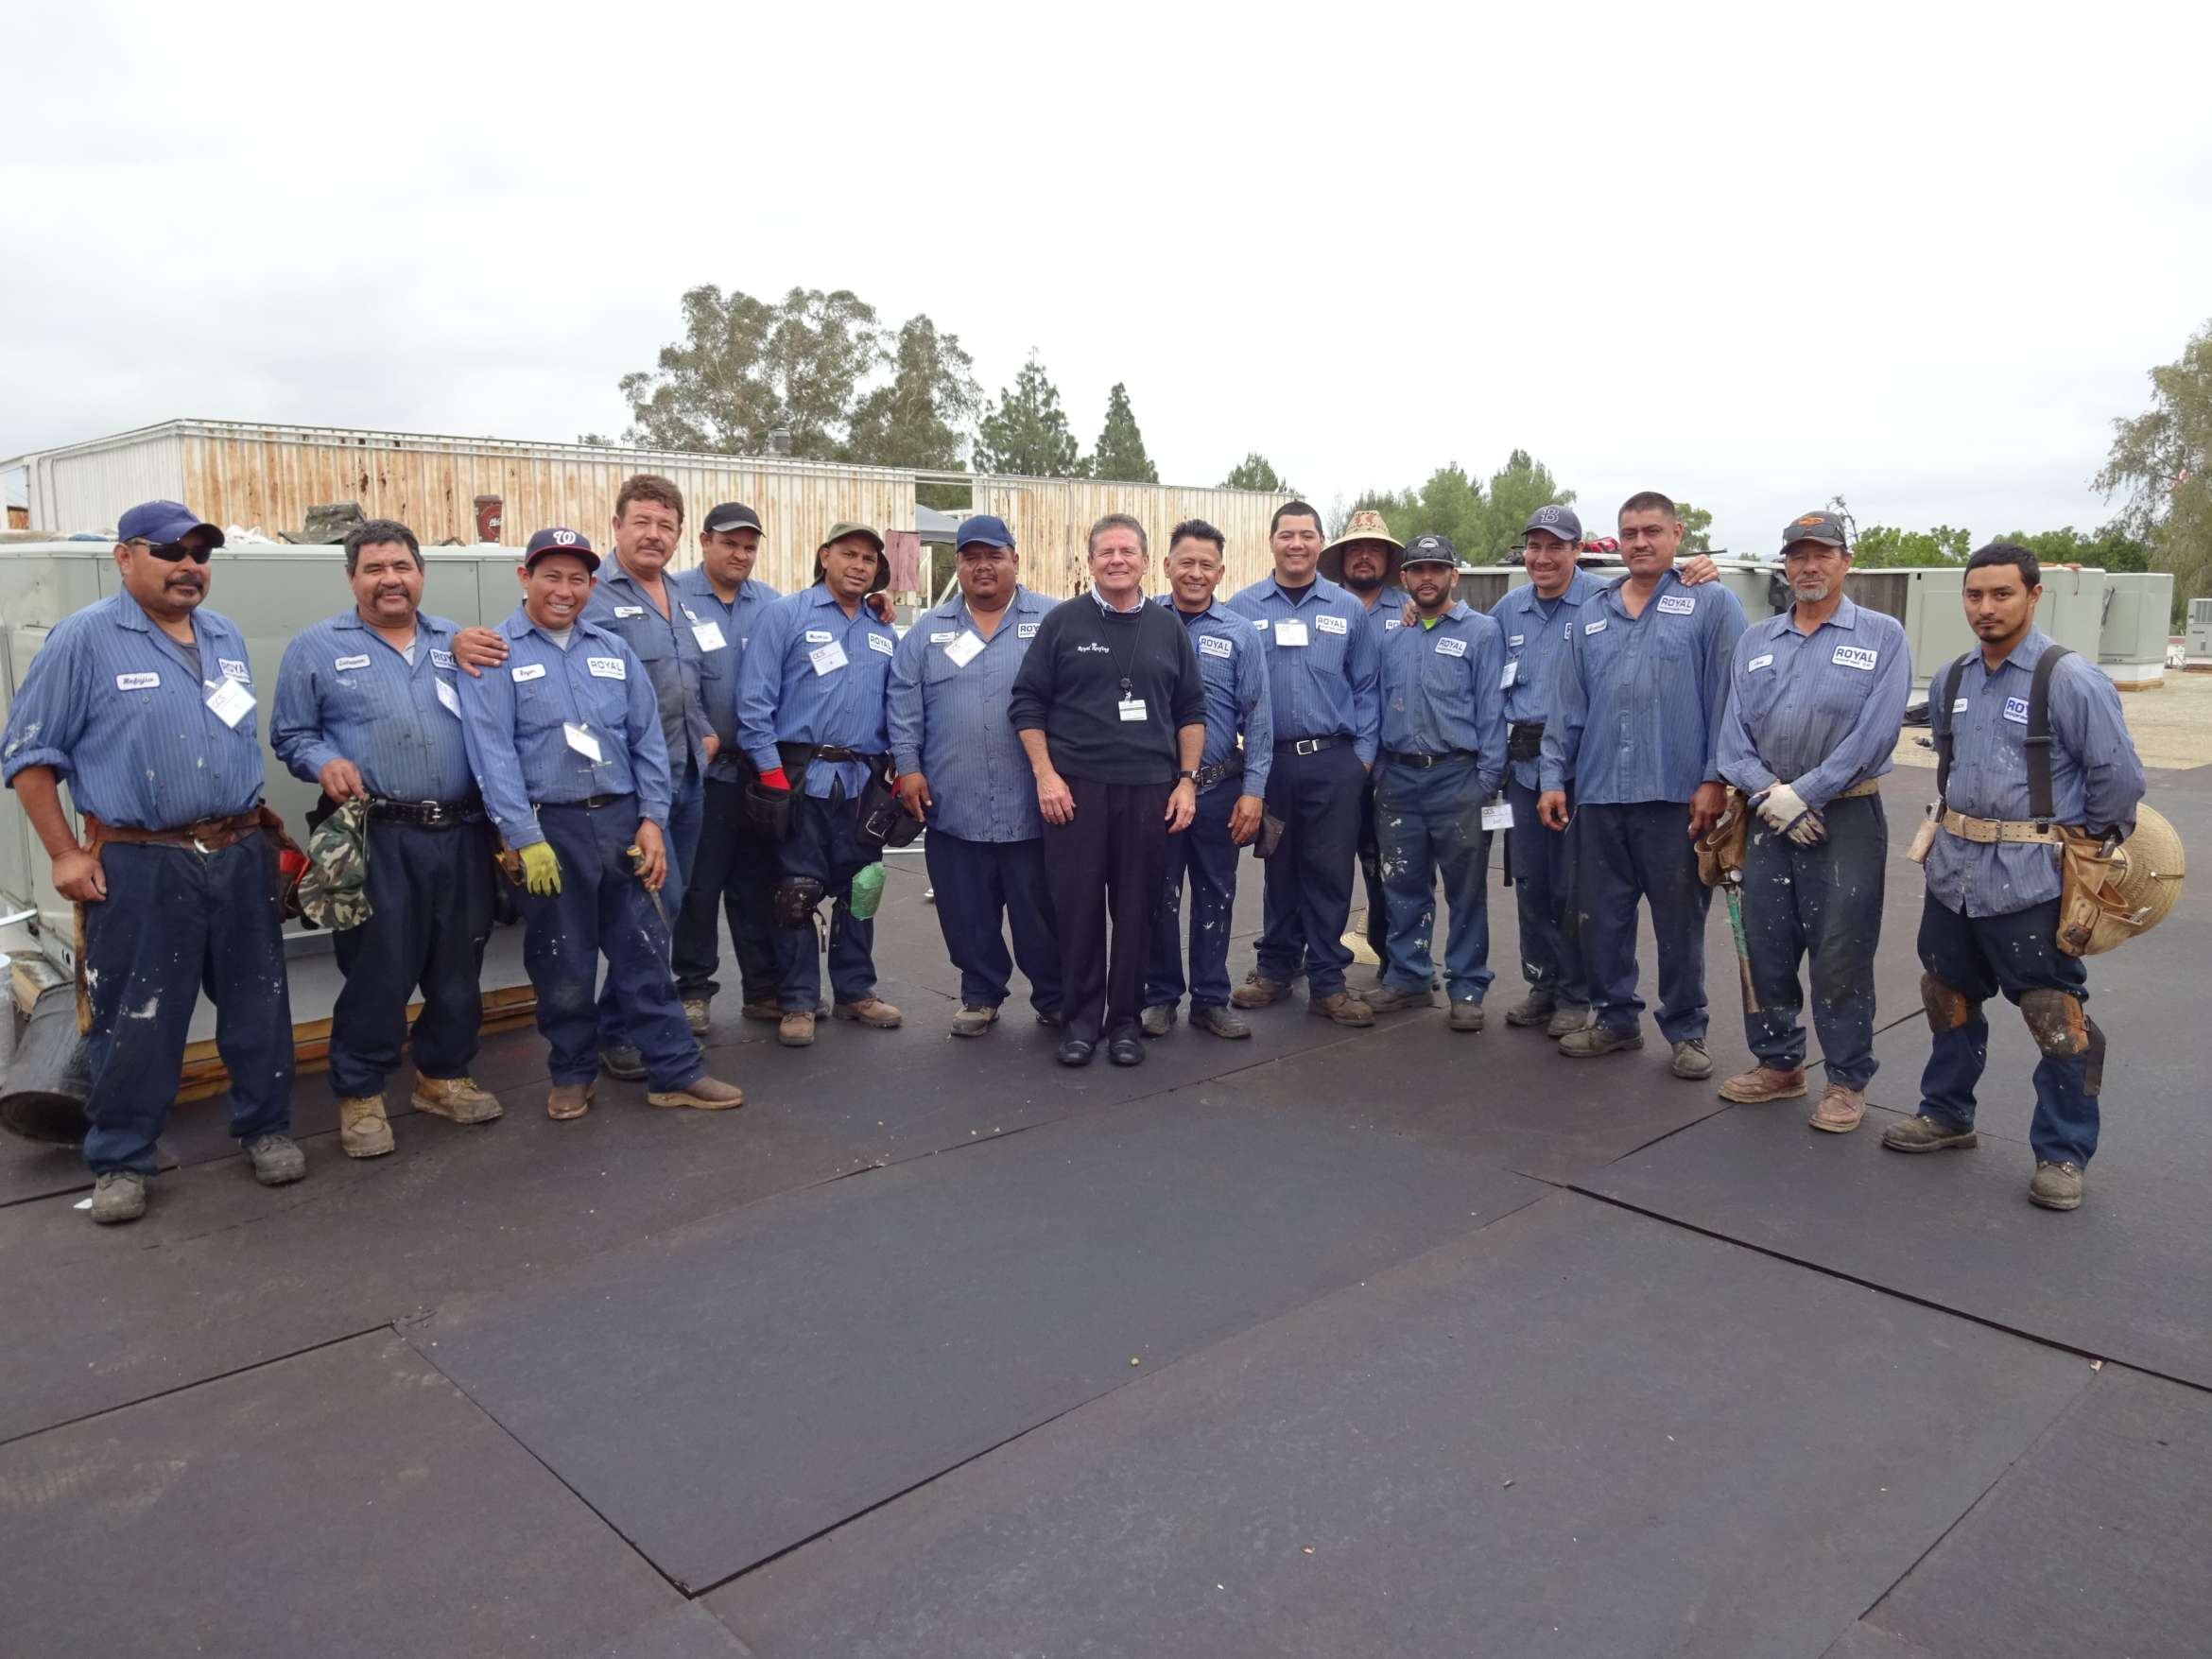 Royal-Roofing-Crew